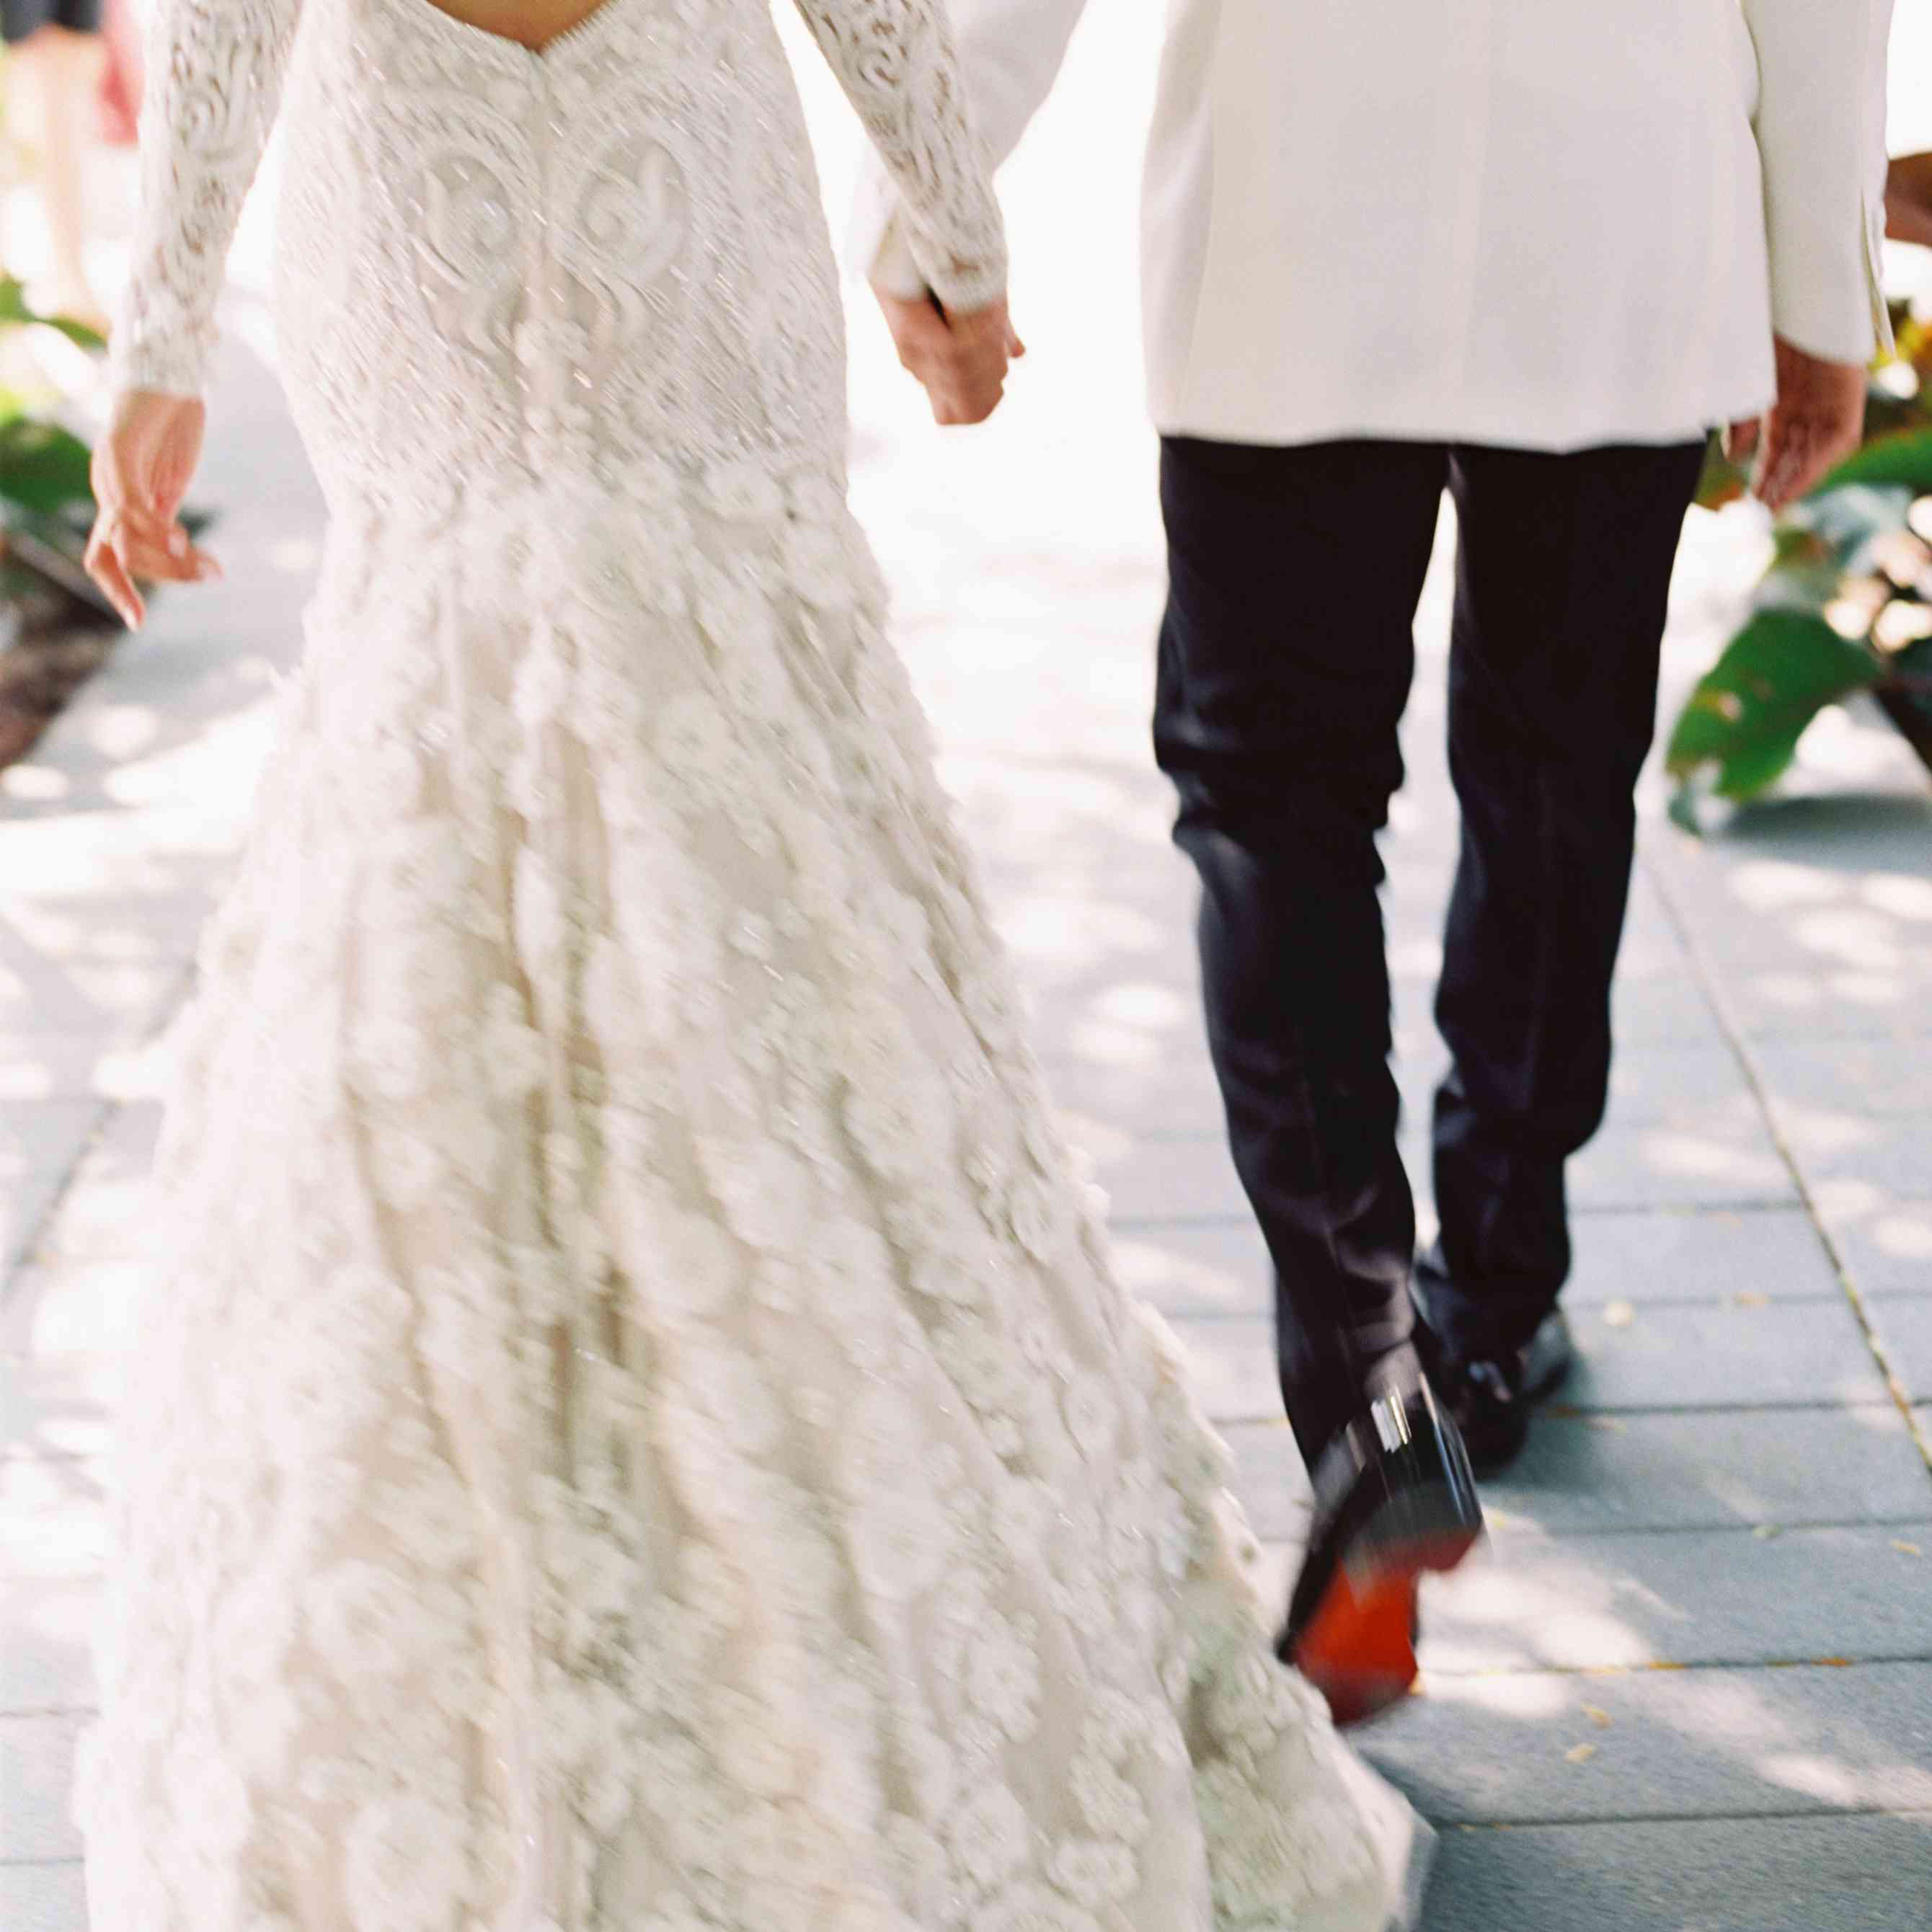 Bride and Groom Hand-in-Hand